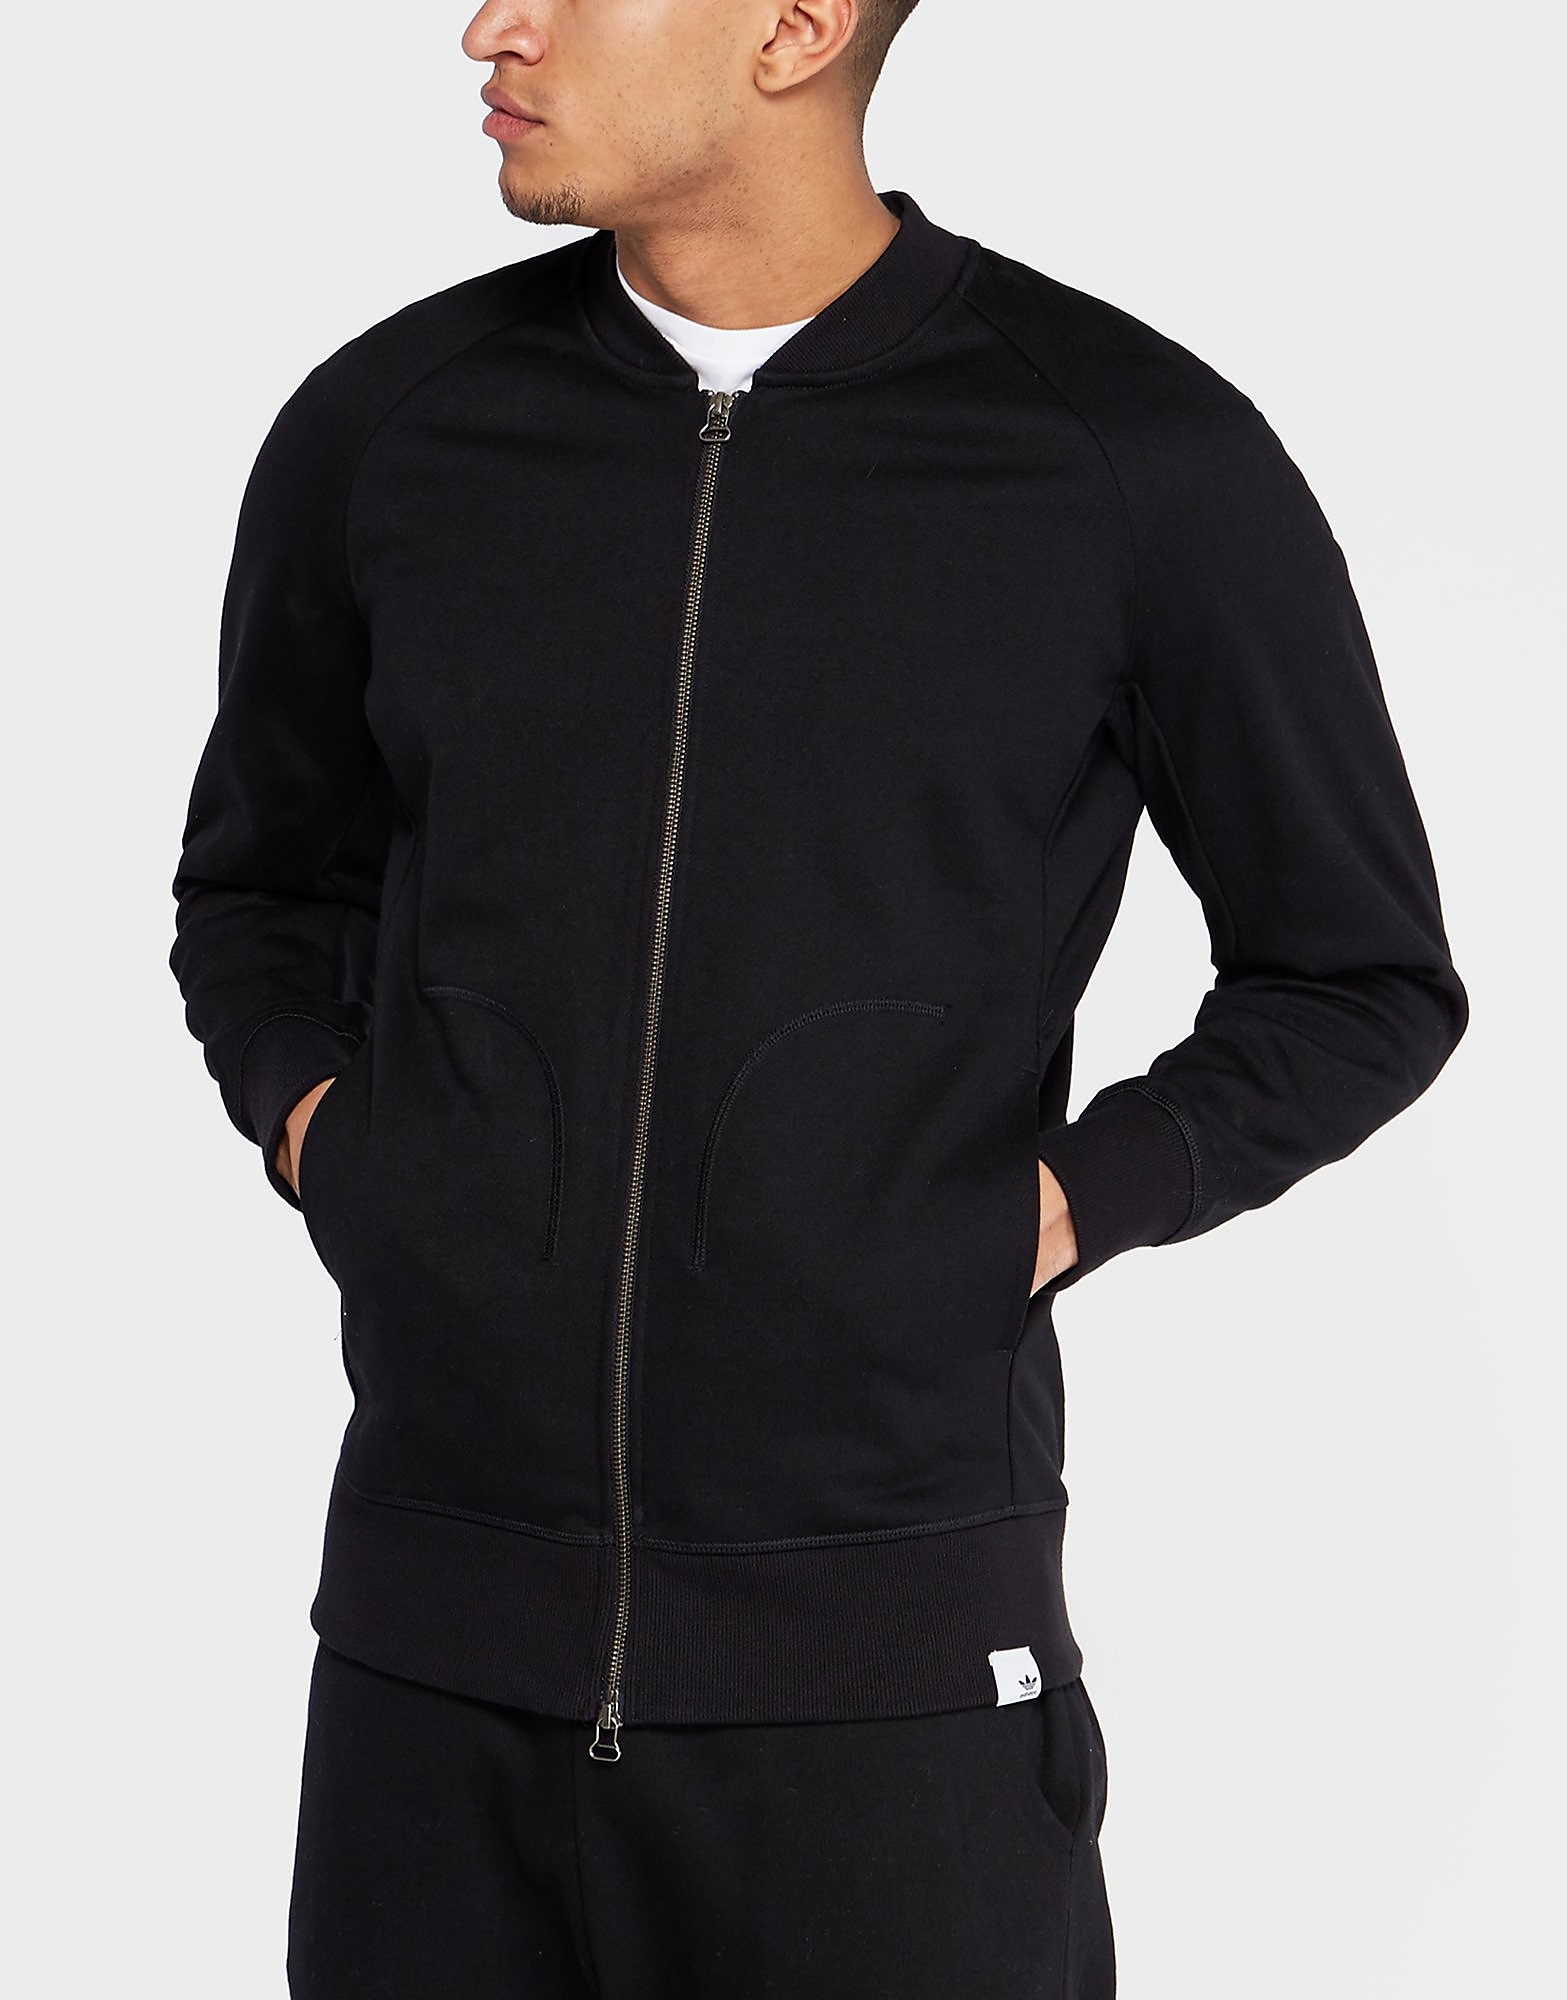 adidas Originals XBYO Track Top